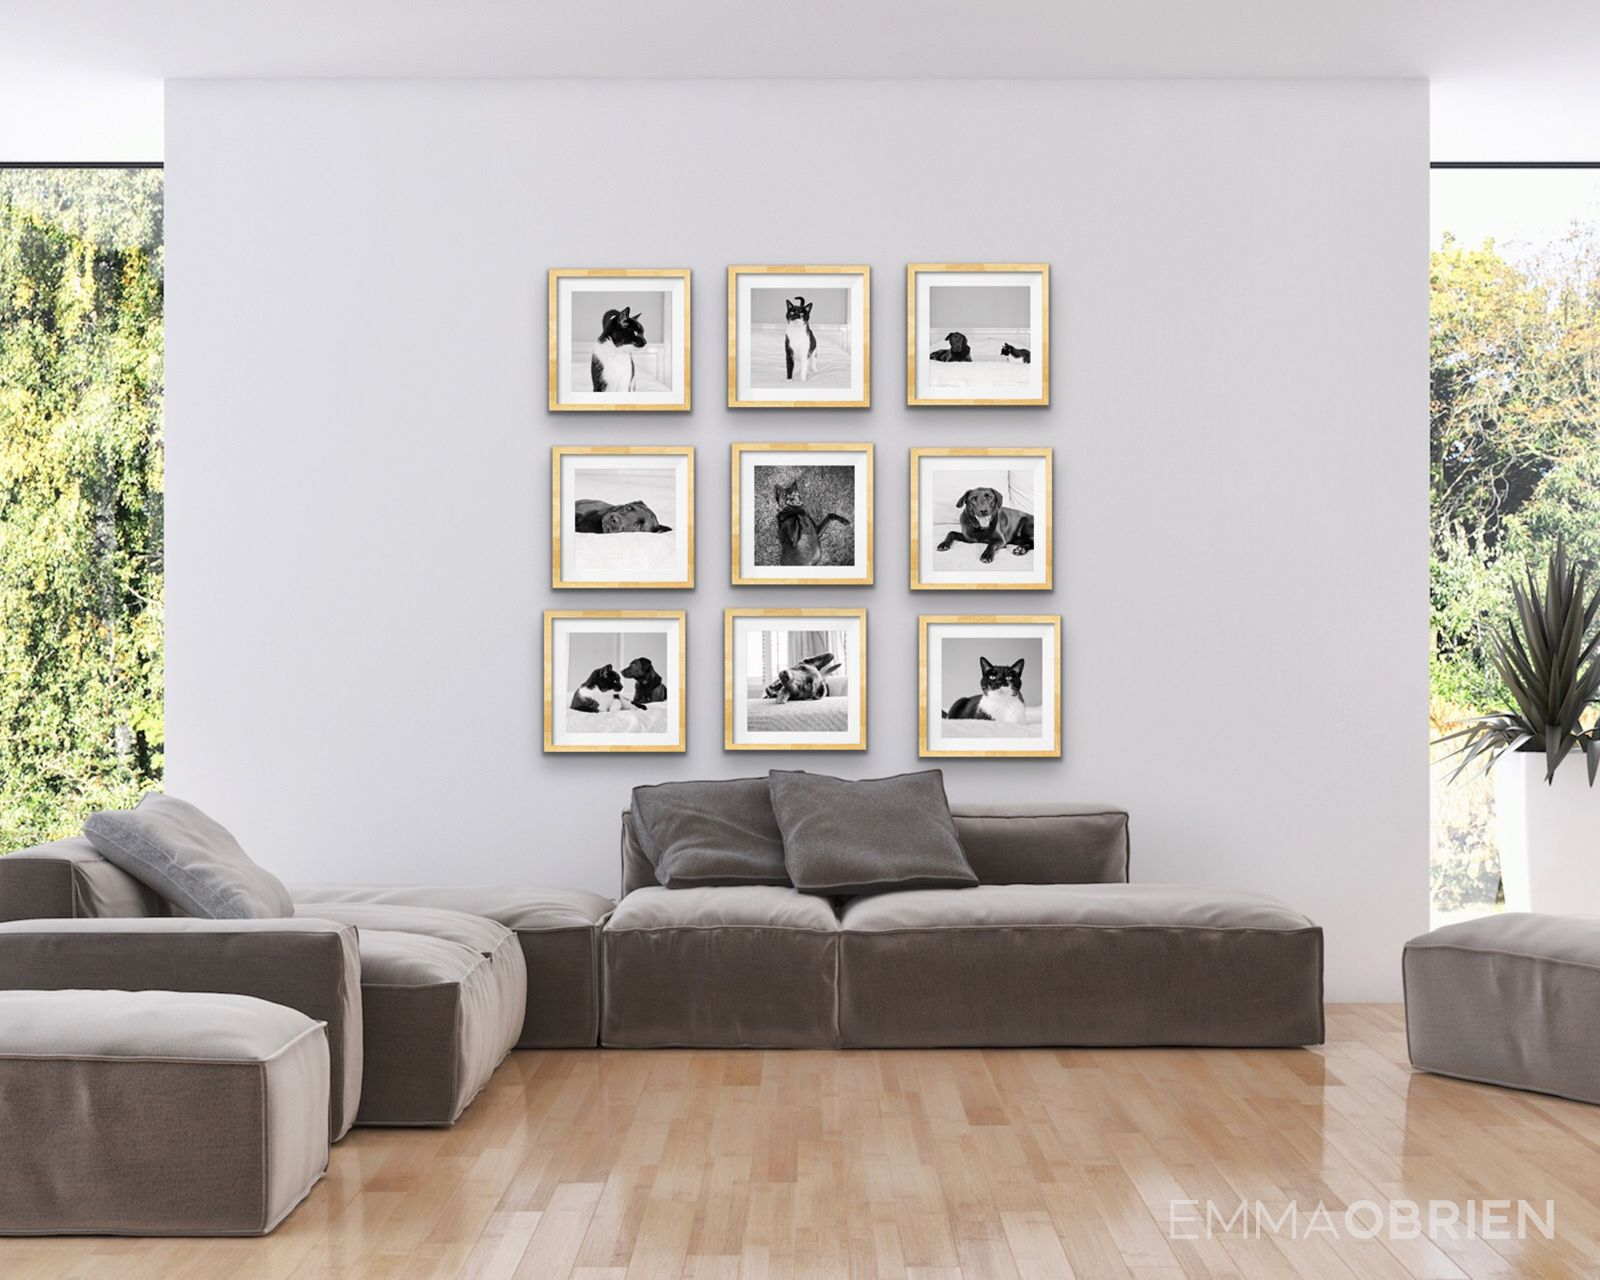 Wall Art And Framing Ideas For Pet Portraits Pets At Home Dog